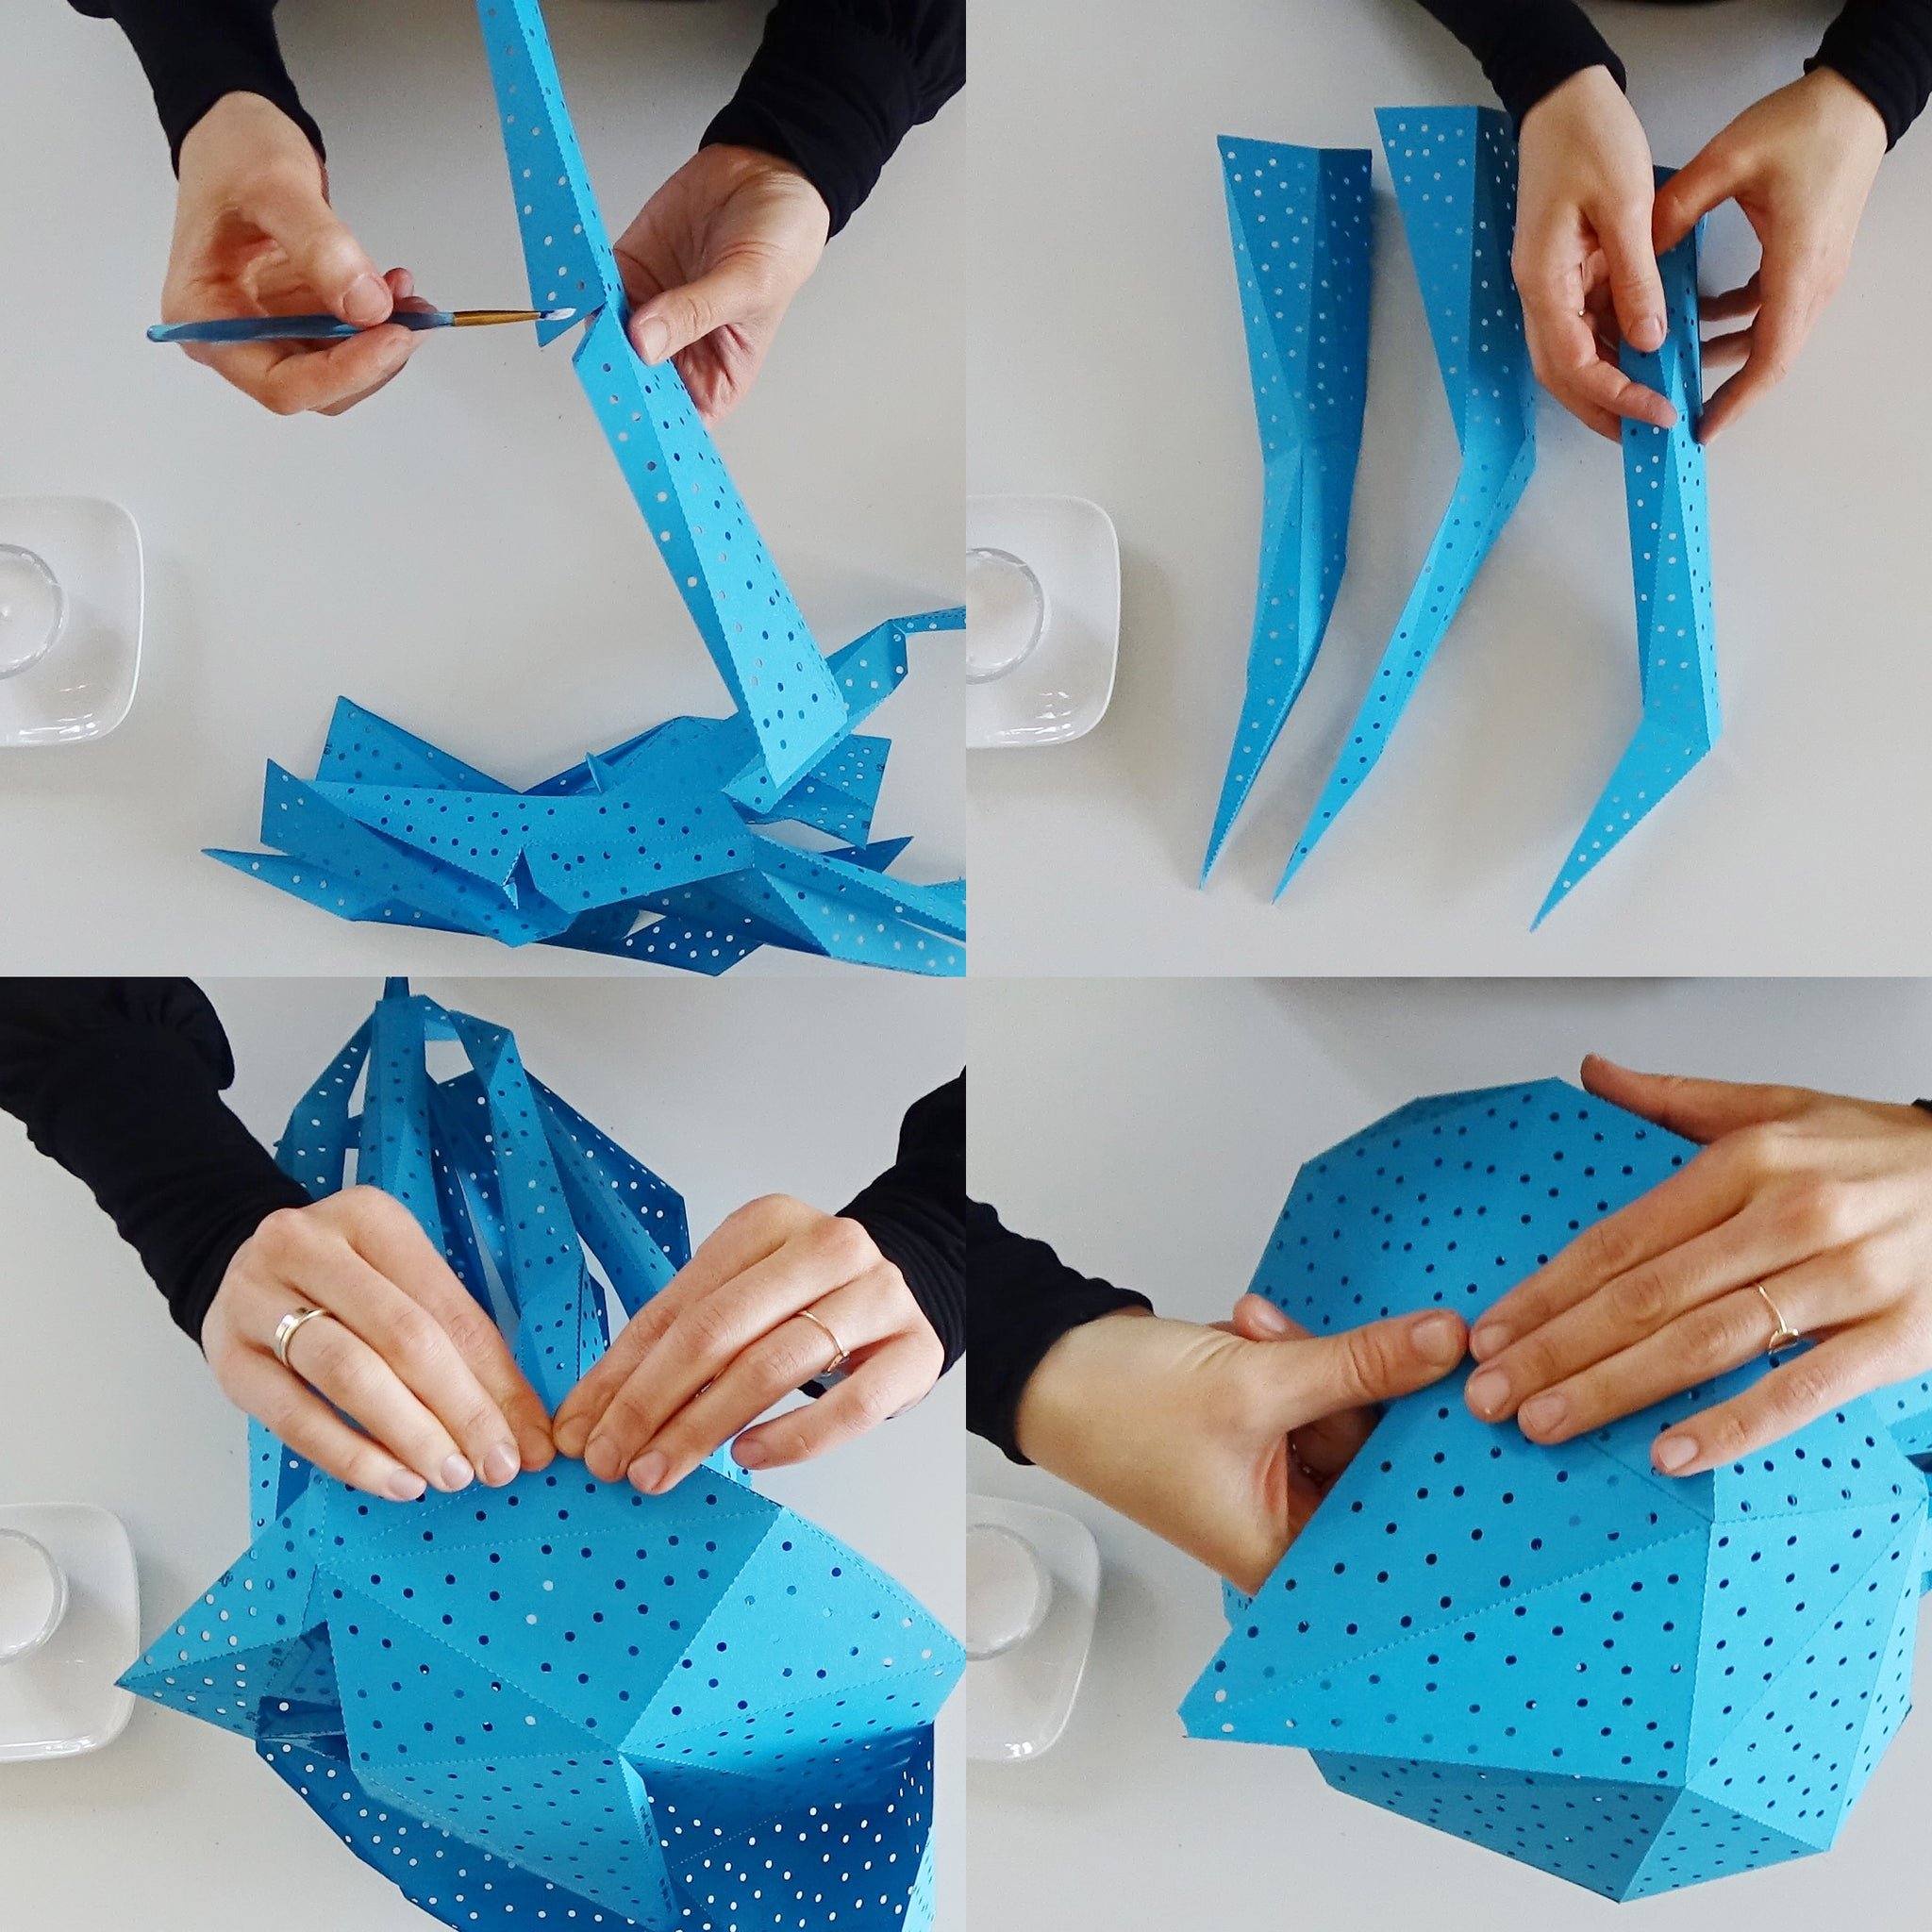 Woman's hands fold and glue the blue jellyfish lantern from the pre-cut templates.